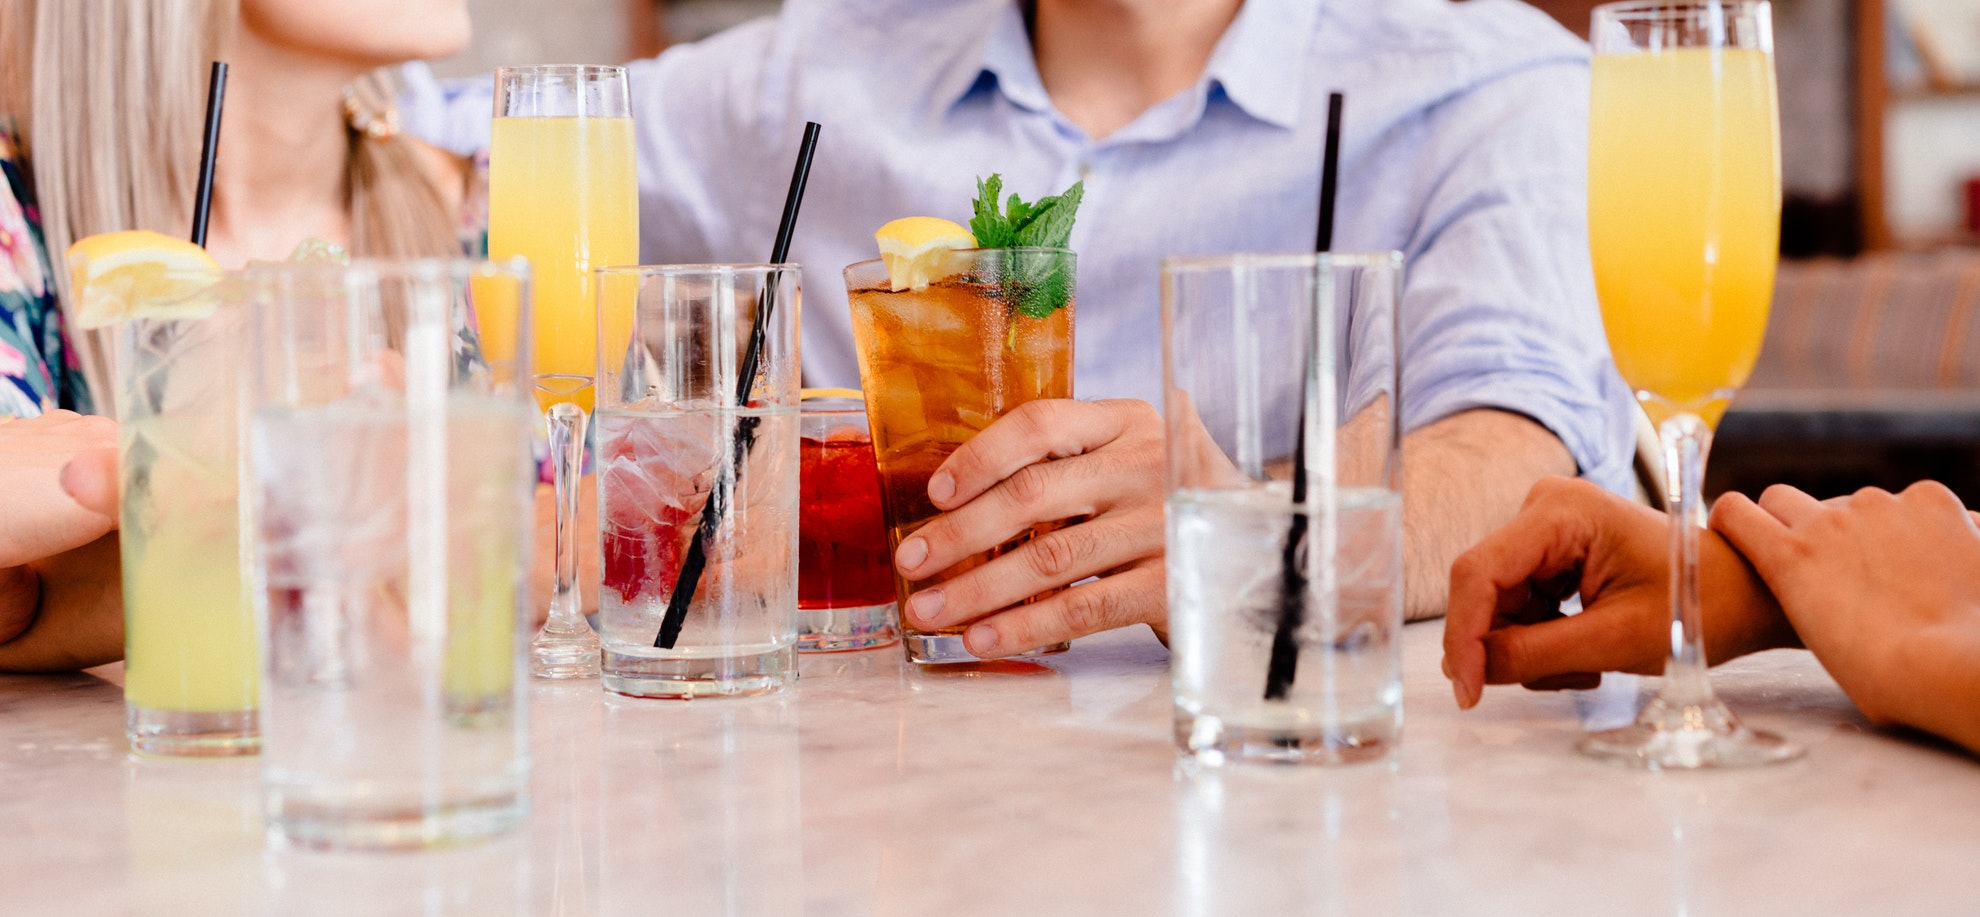 Individuals at lunch enjoying different alcoholic beverages